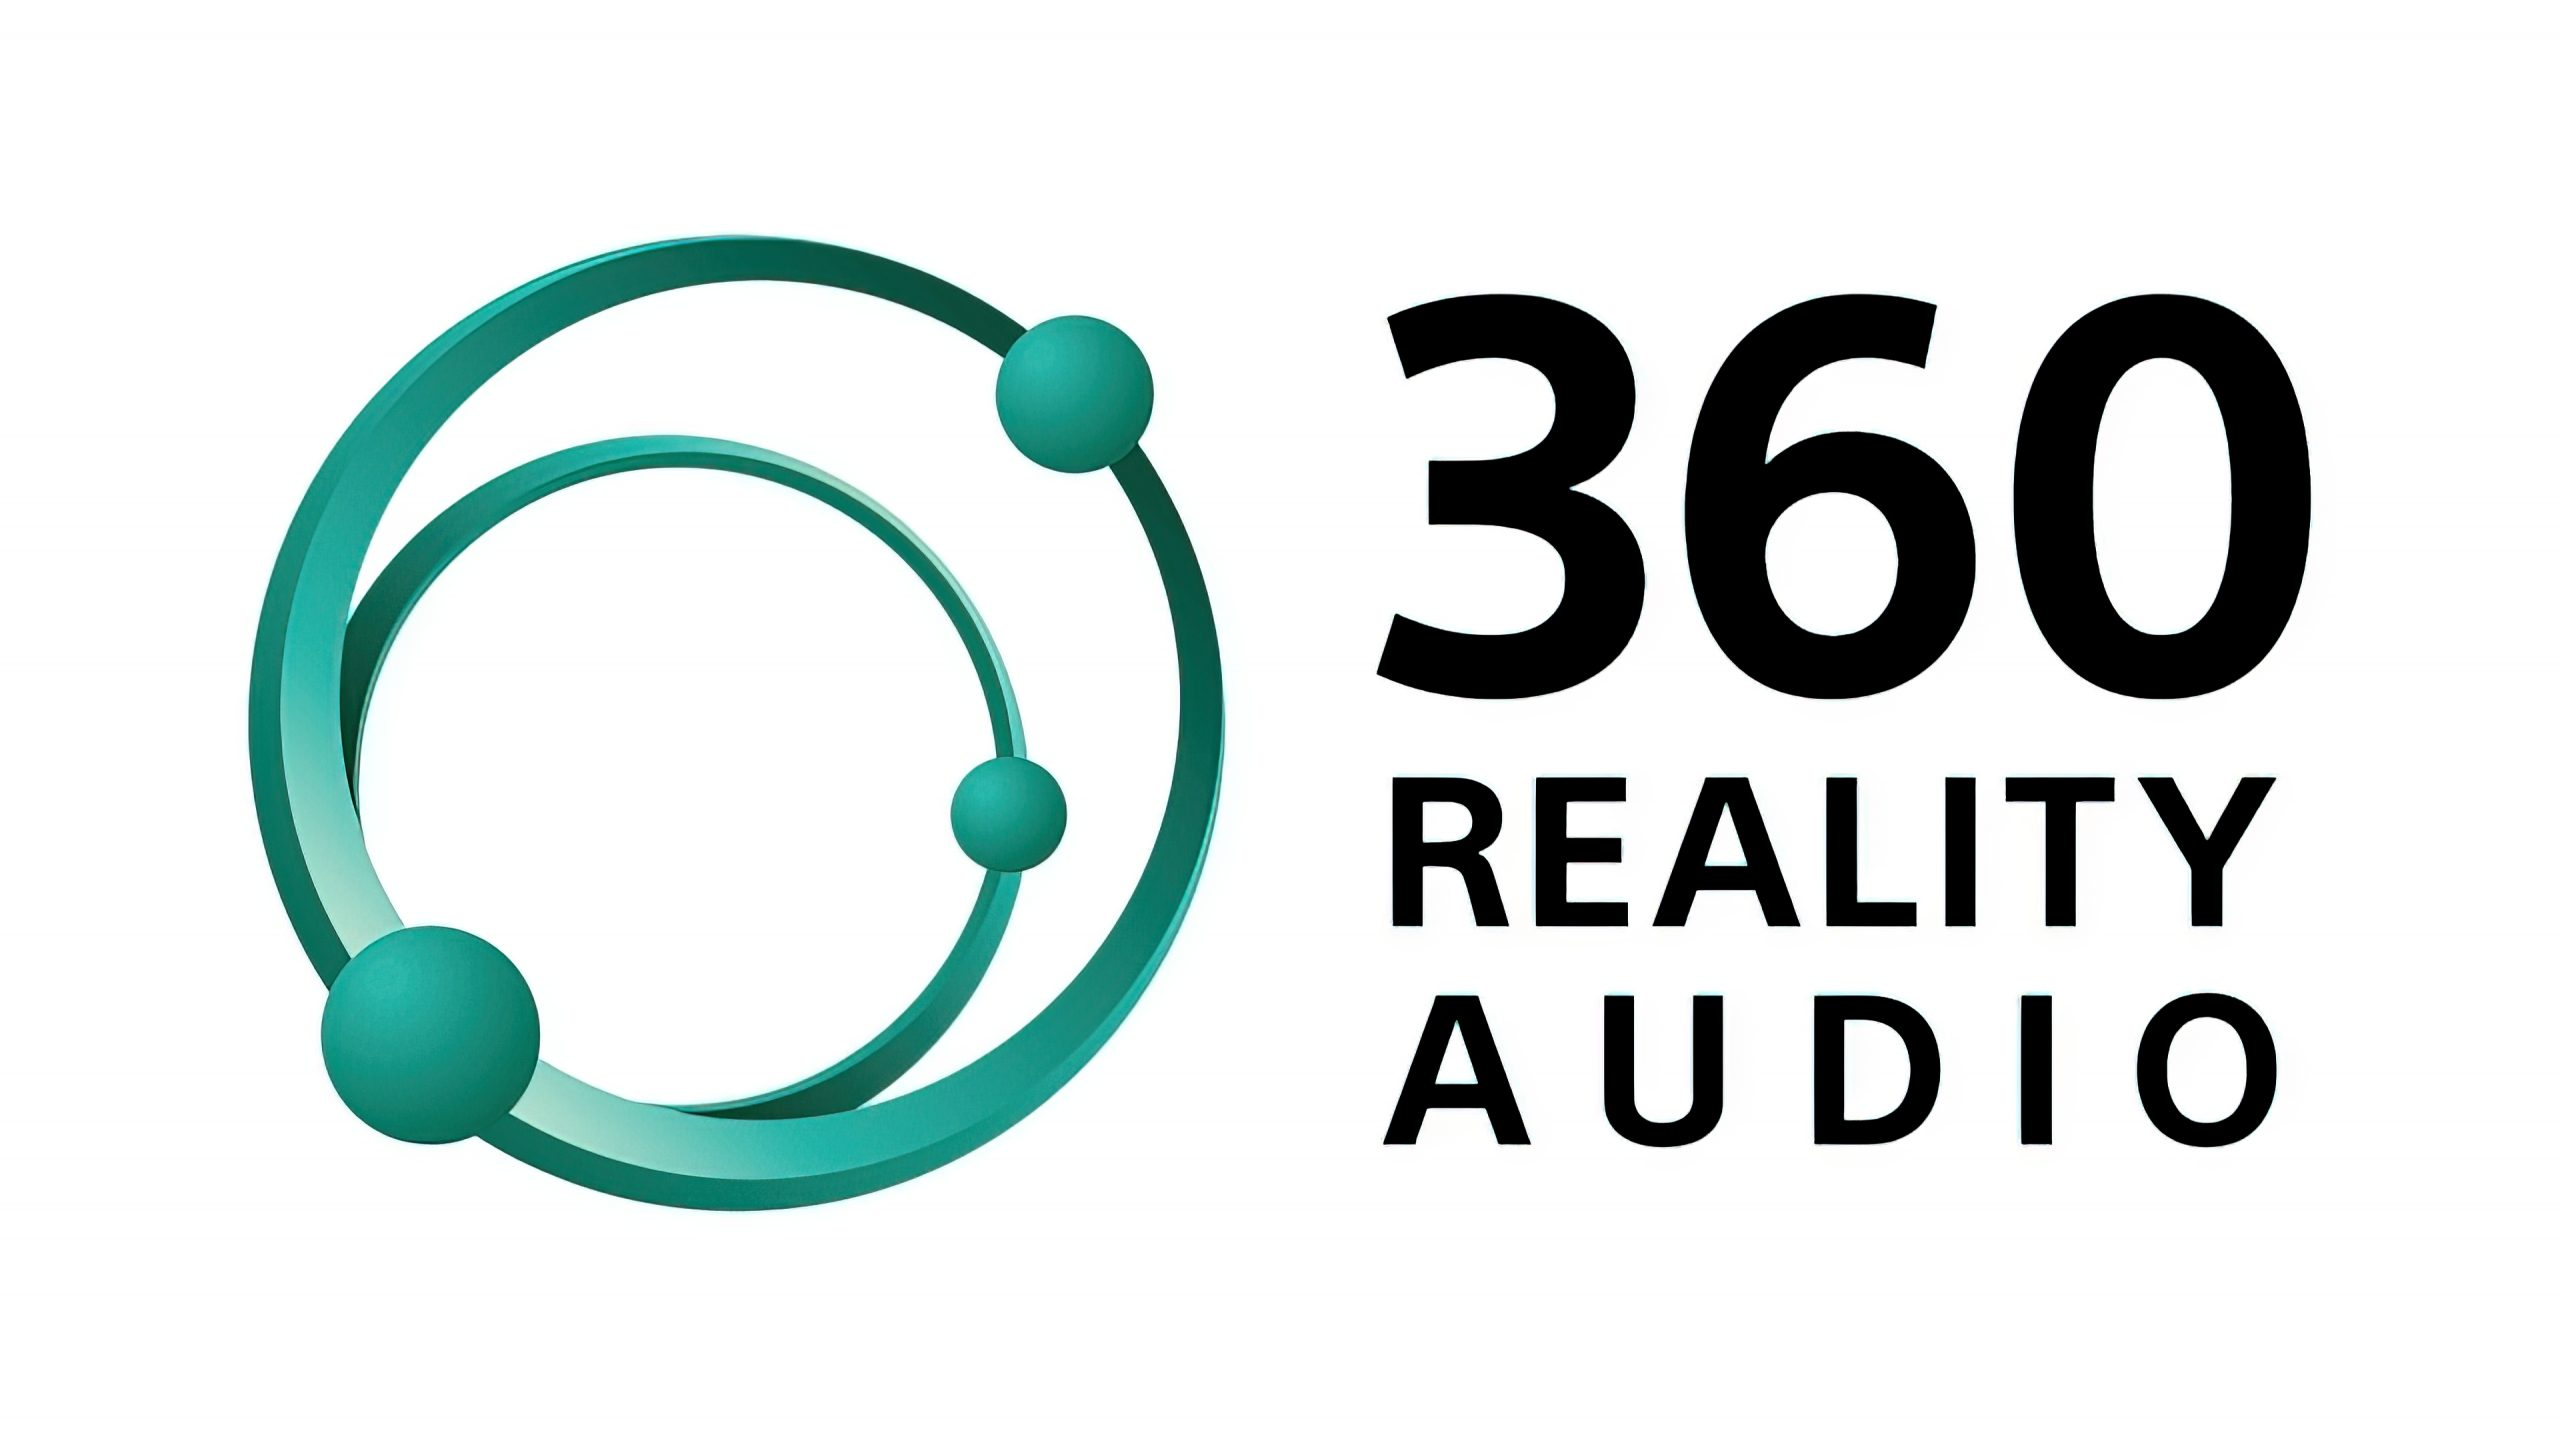 Sony 360 Reality Audio logo